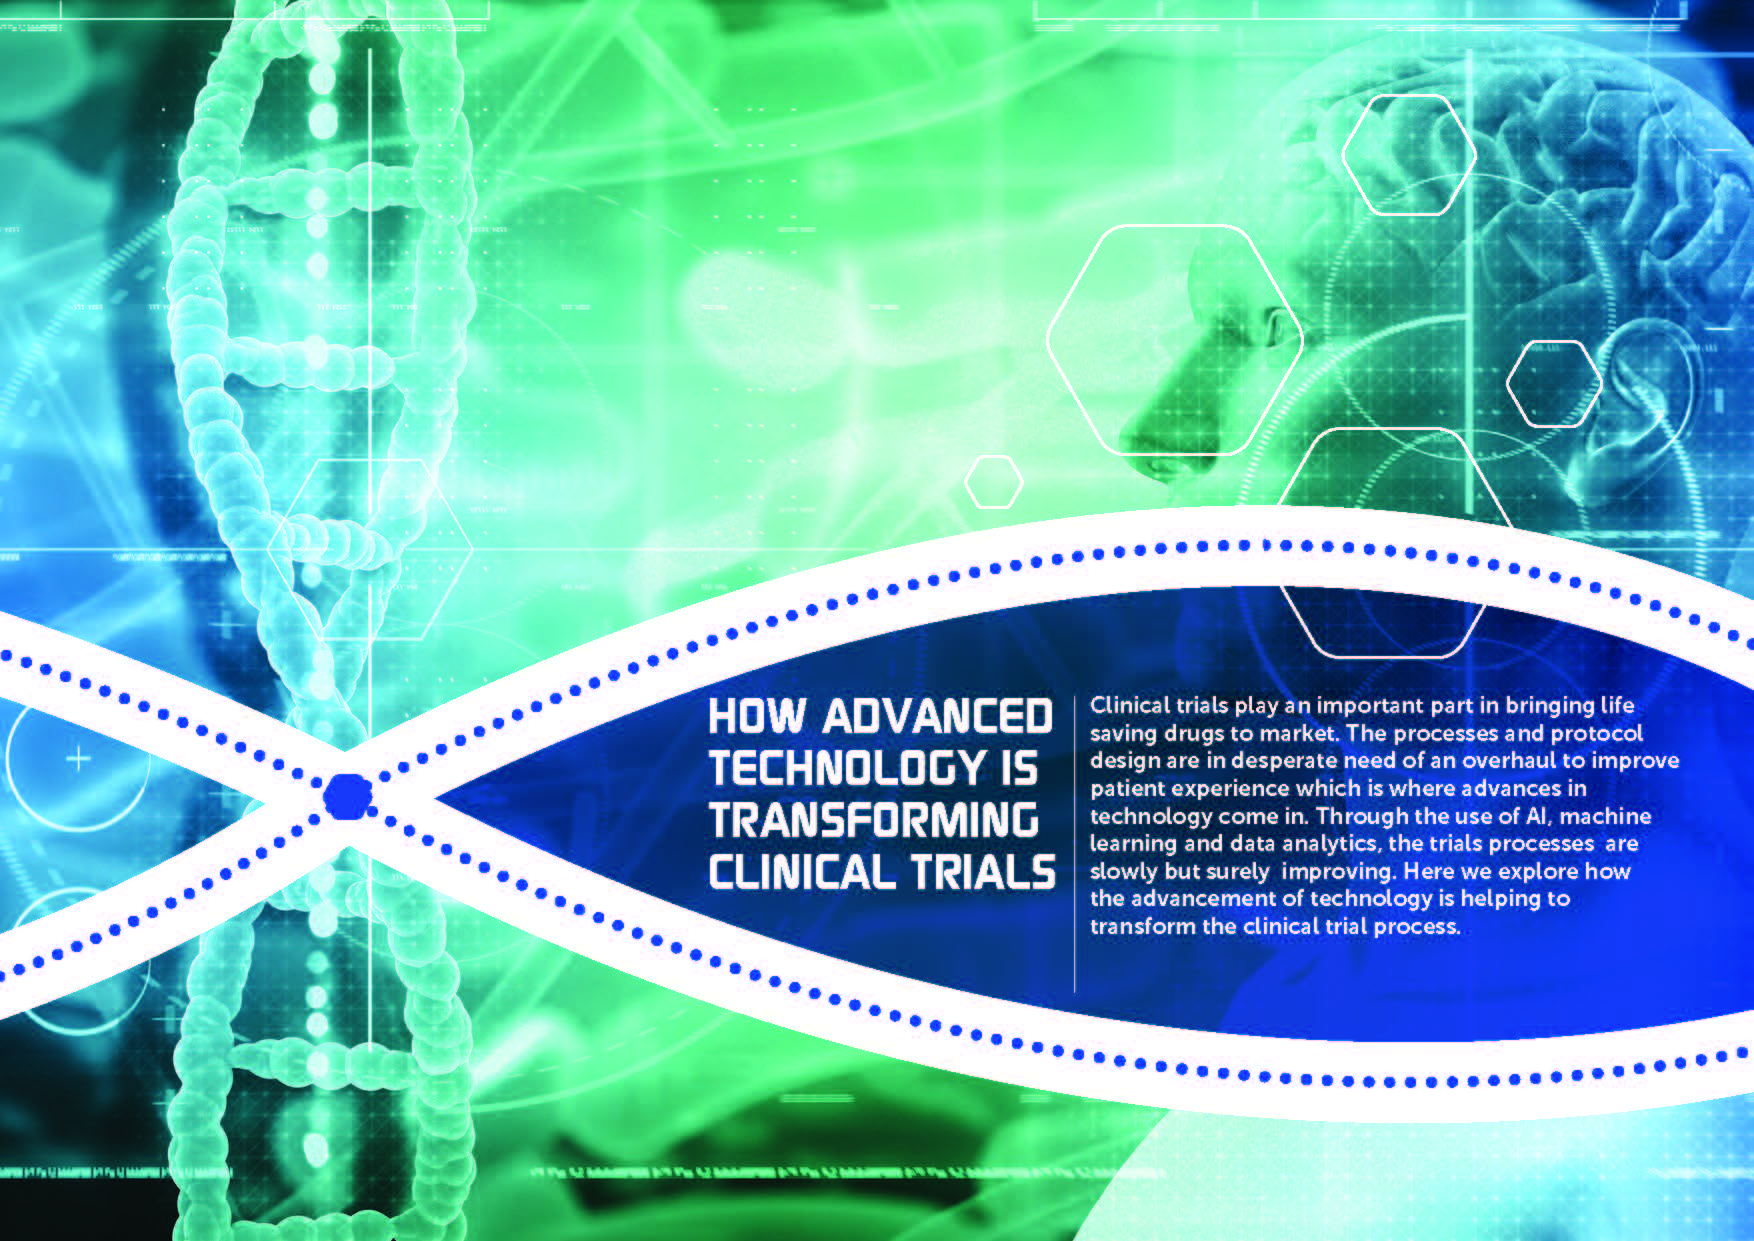 Download the Article - How Advanced Technology Is Transforming Clinical Trials